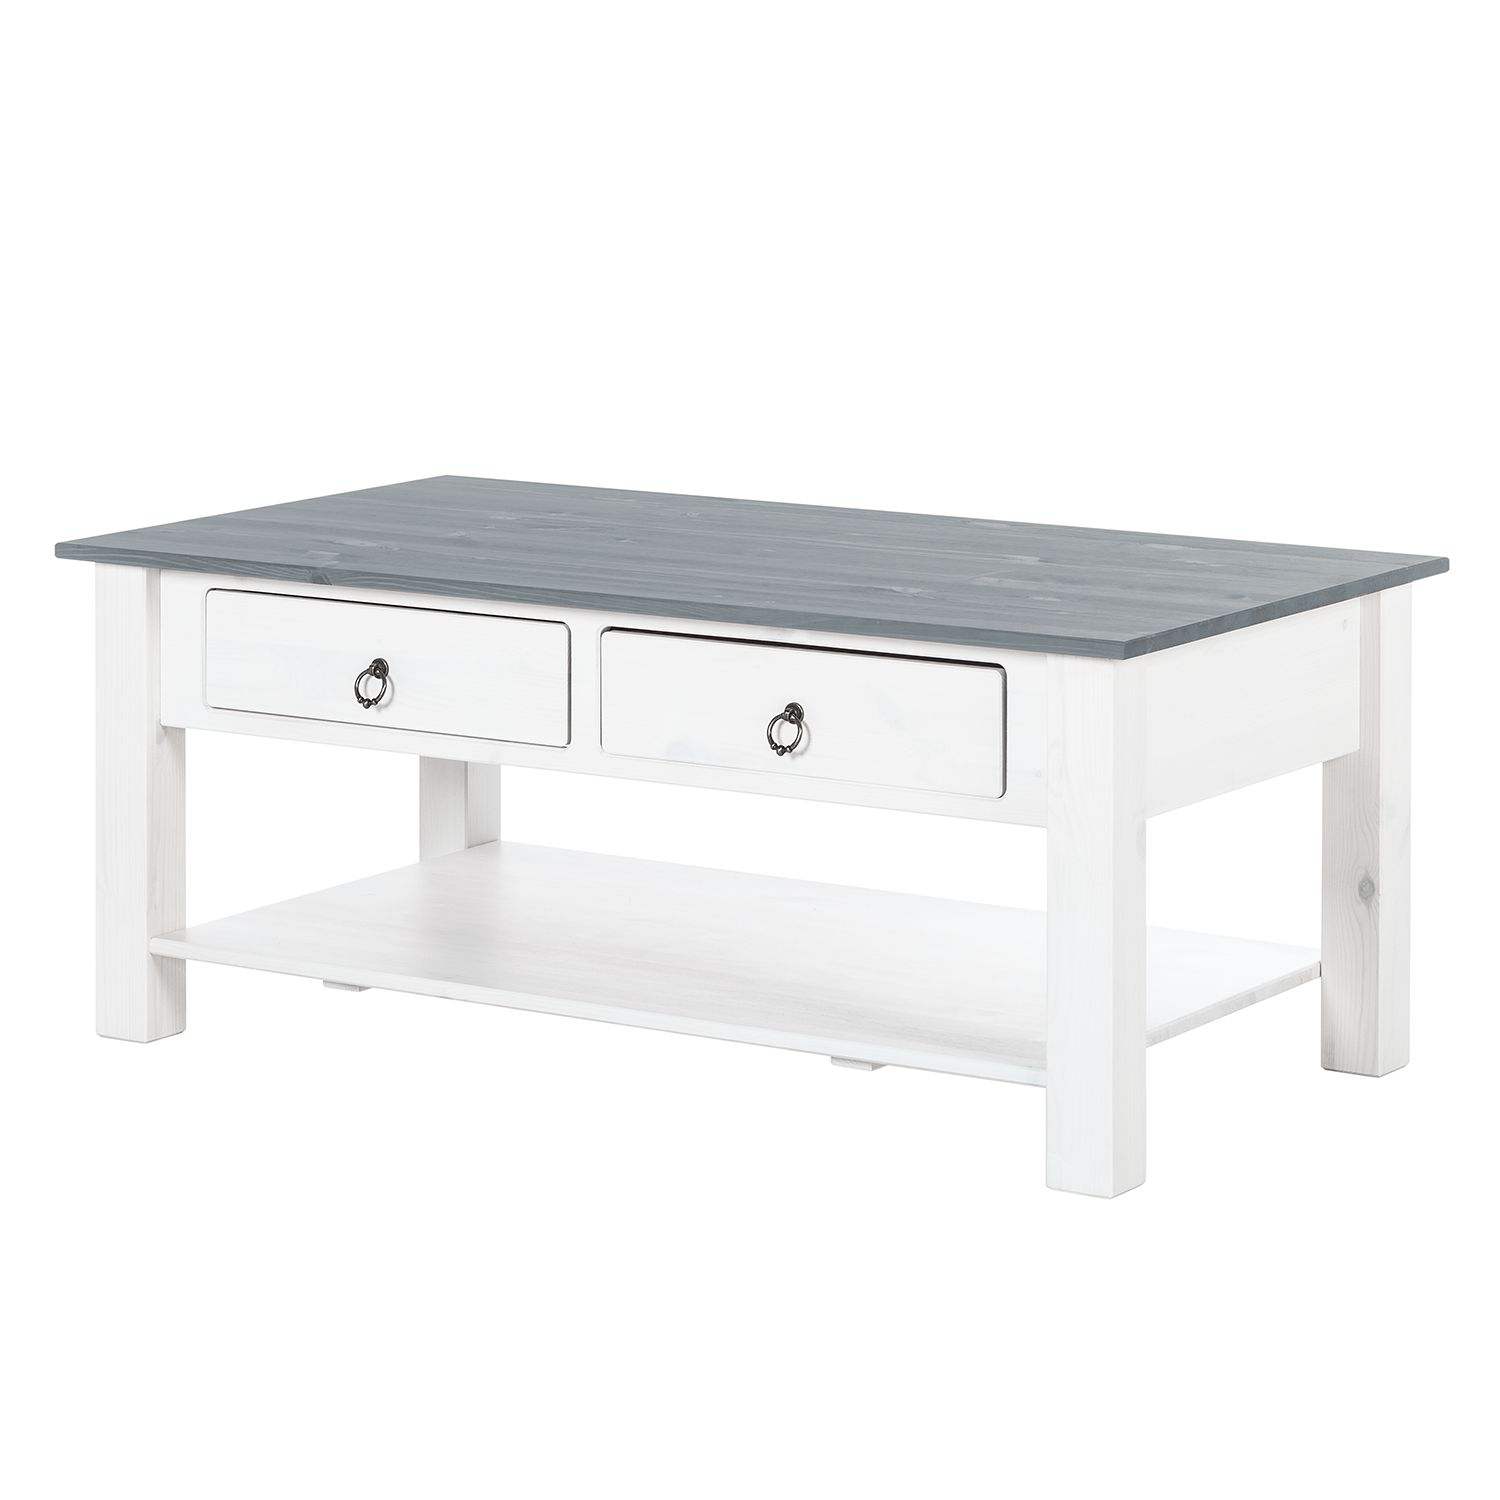 Table basse Valmer II